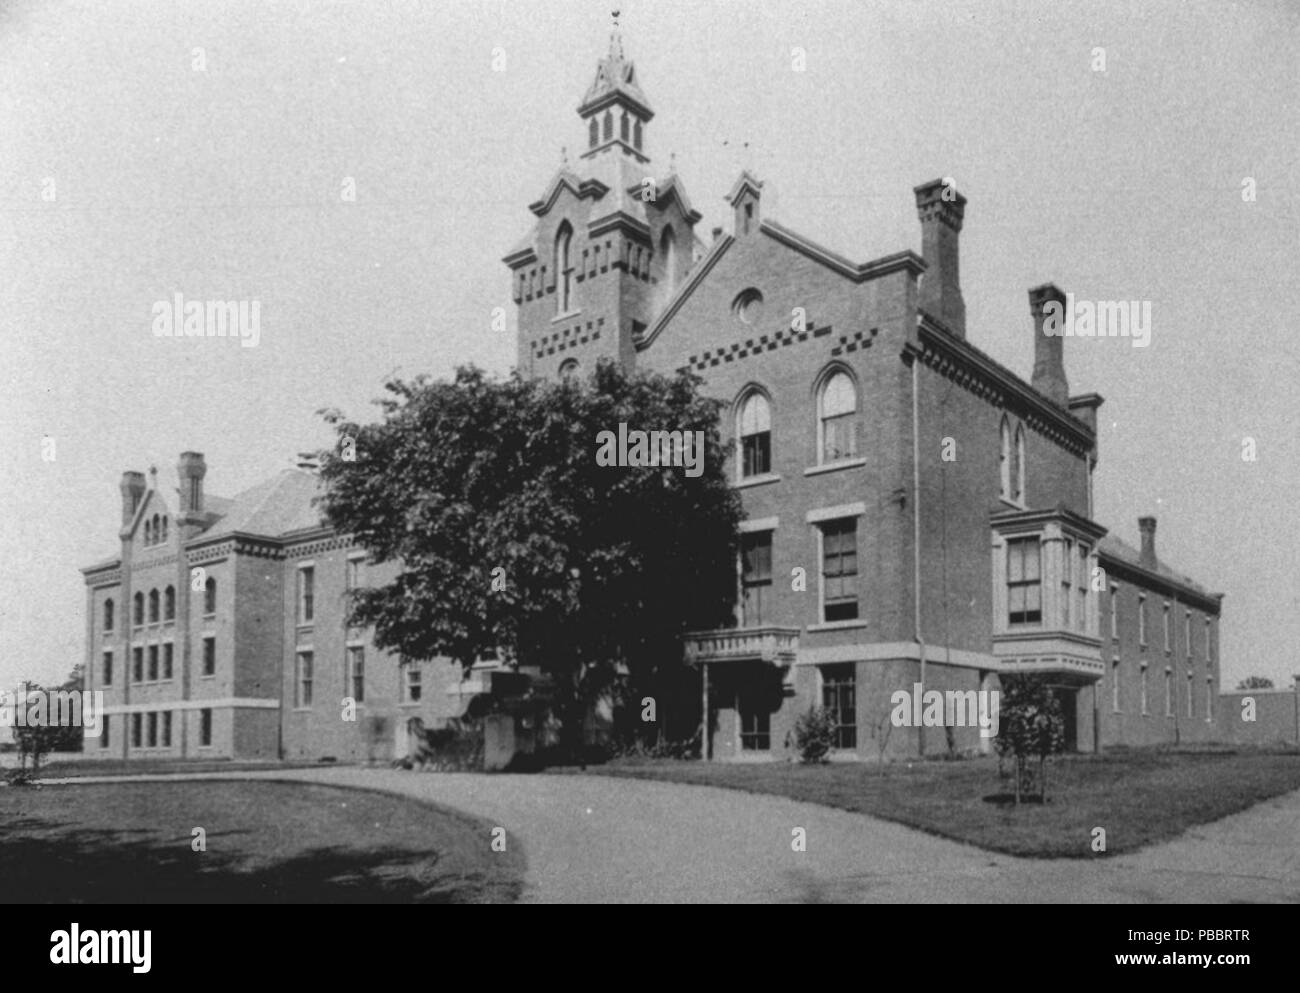 . English: The old Fairfield County Jail building, Bridgeport, Connecticut. This building has been demolished.   This is an image of a place or building that is listed on the National Register of Historic Places in the United States of America. Its reference number is 85000841  . circa 1890 1133 OldFairfieldCountyJail Stock Photo